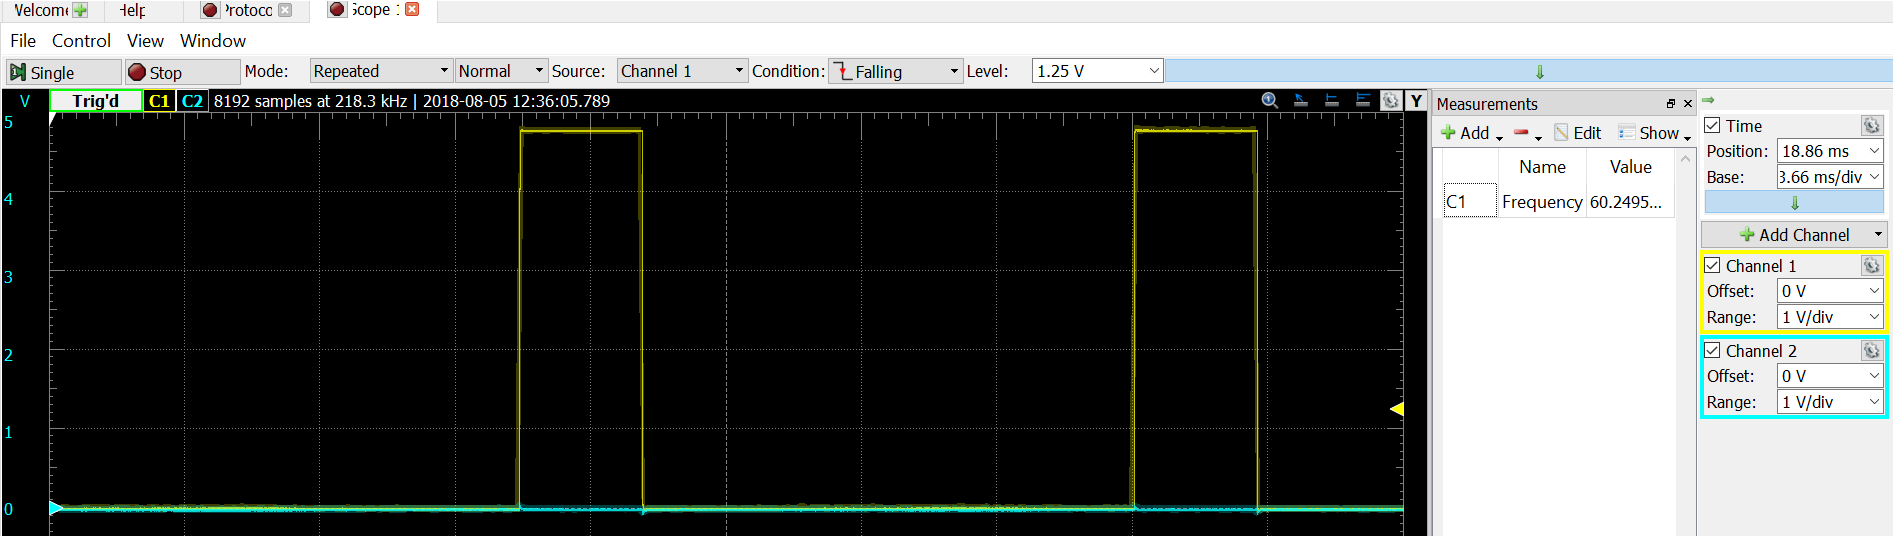 Servo PWM output - showing 60 Hz timing